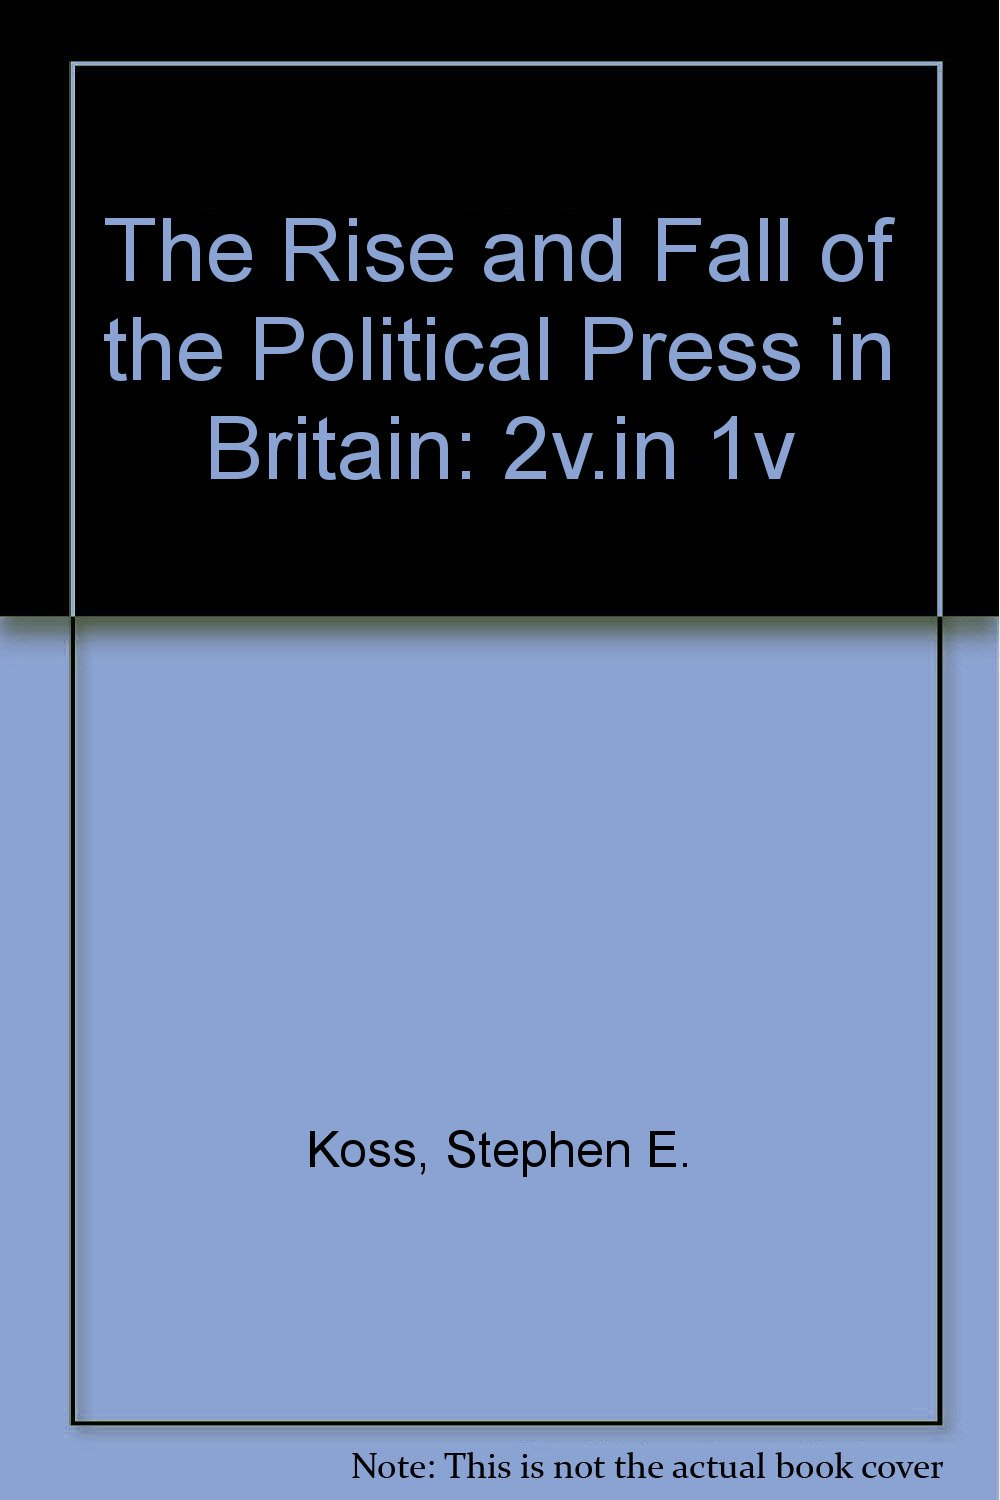 The Rise and Fall of the Political Press in Britain: 2v.in 1v